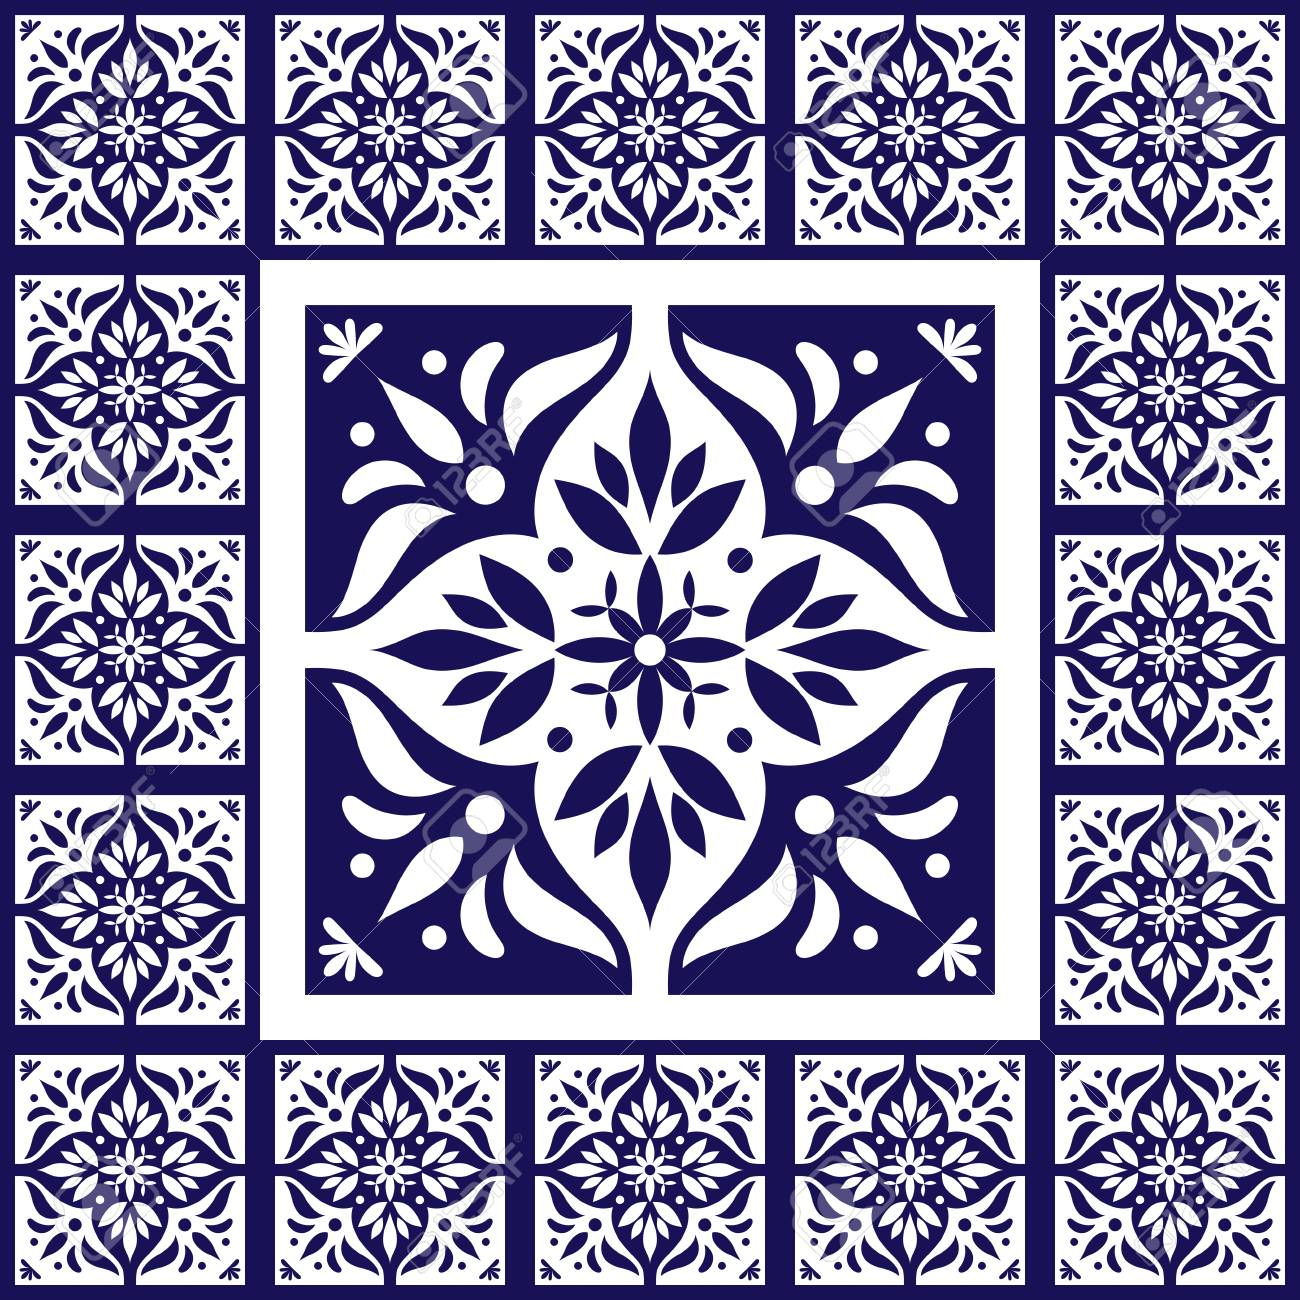 Blue white tiles floor - pattern vector with ceramic cement tiles